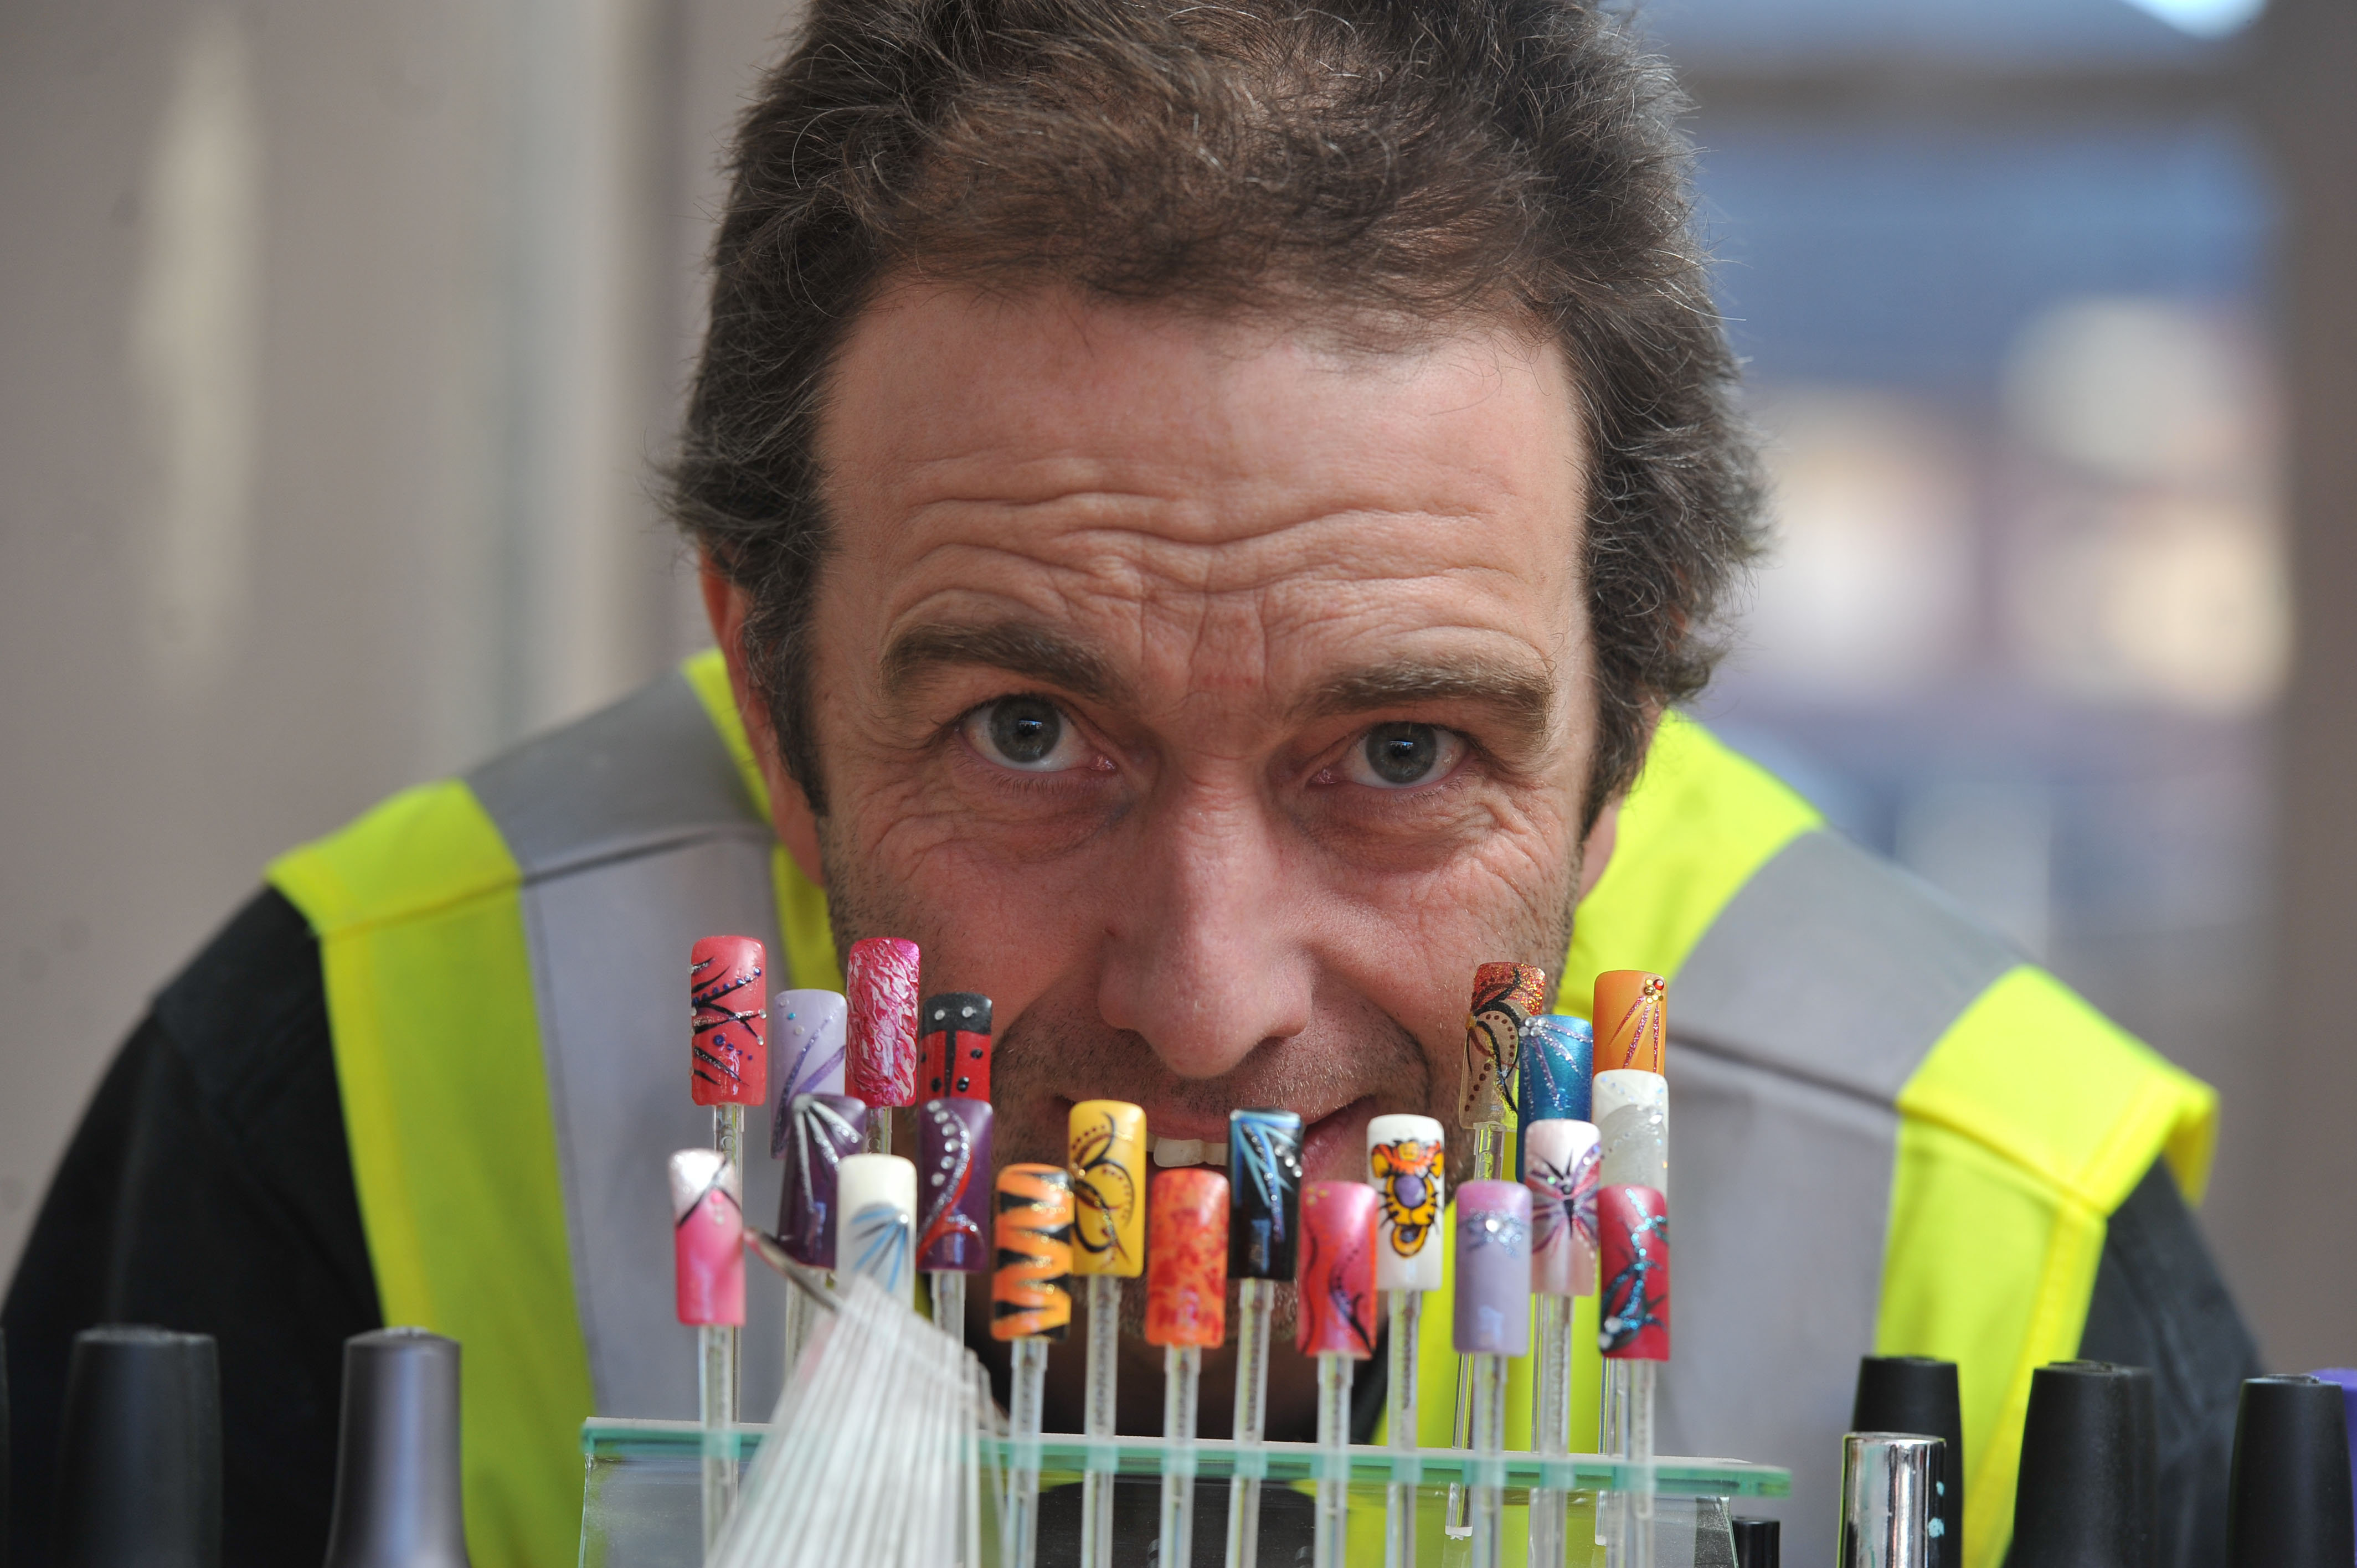 Burly builder works with metal nails by day - and fingernails by ...